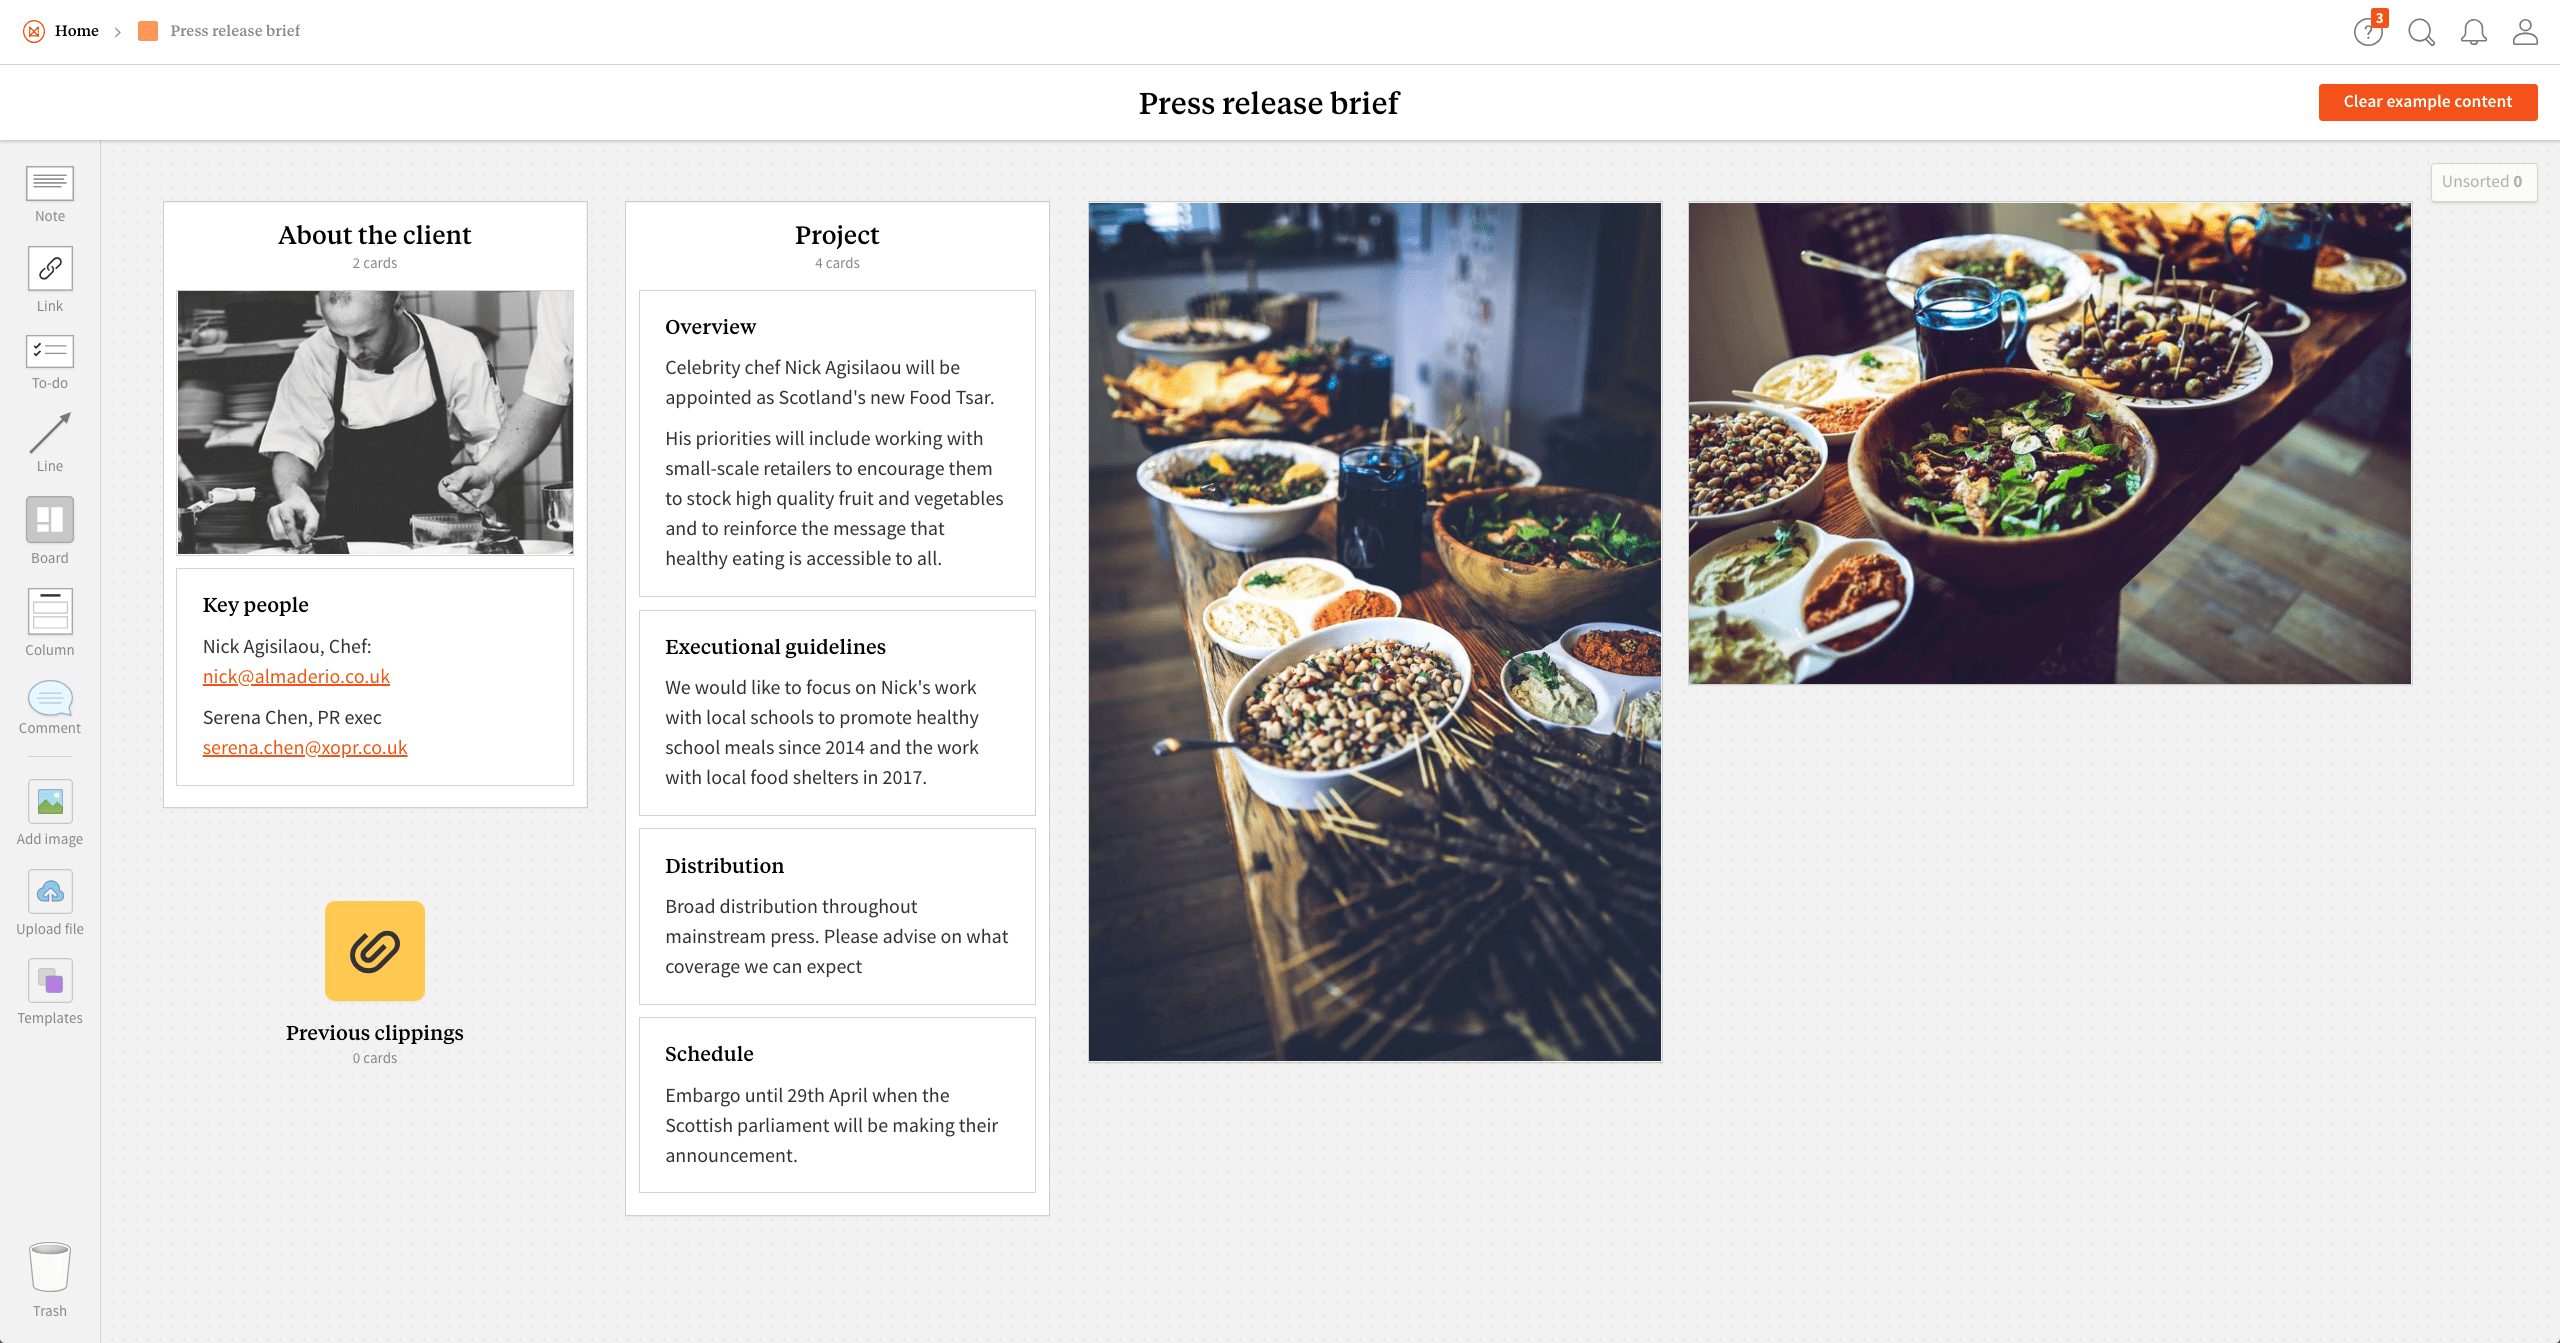 Completed Press Release Brief template in Milanote app